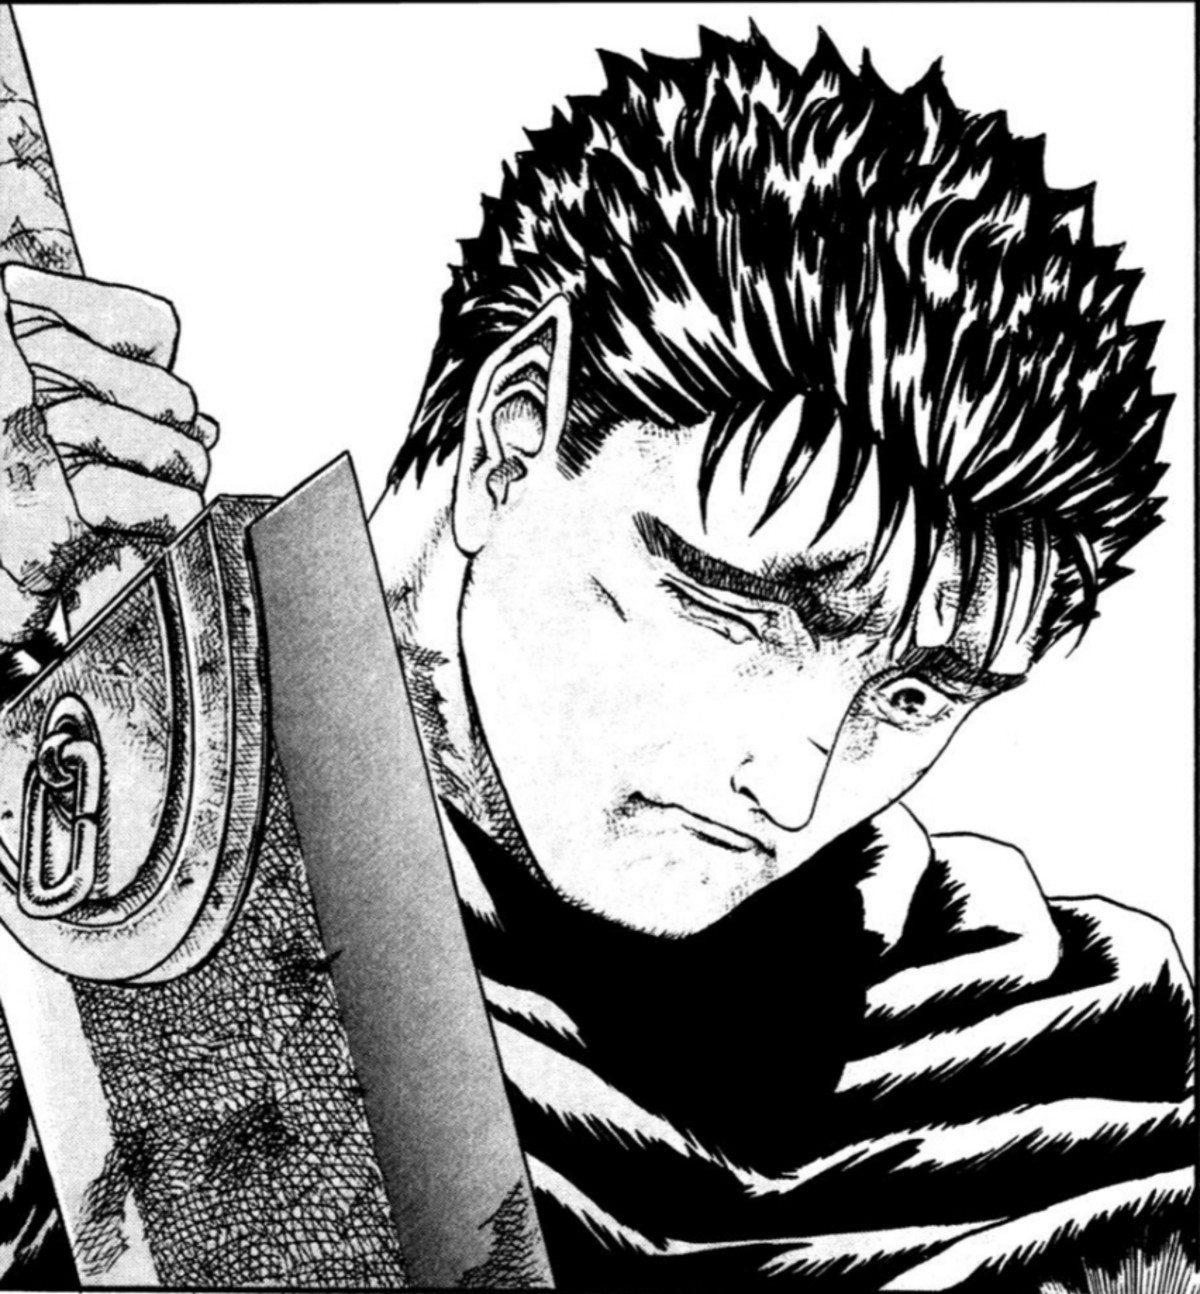 Reccomend please. So I finished reading Berserk and I've got a void to fill till there's more, anyone got any manga recommendations? Preferably action, I've alr